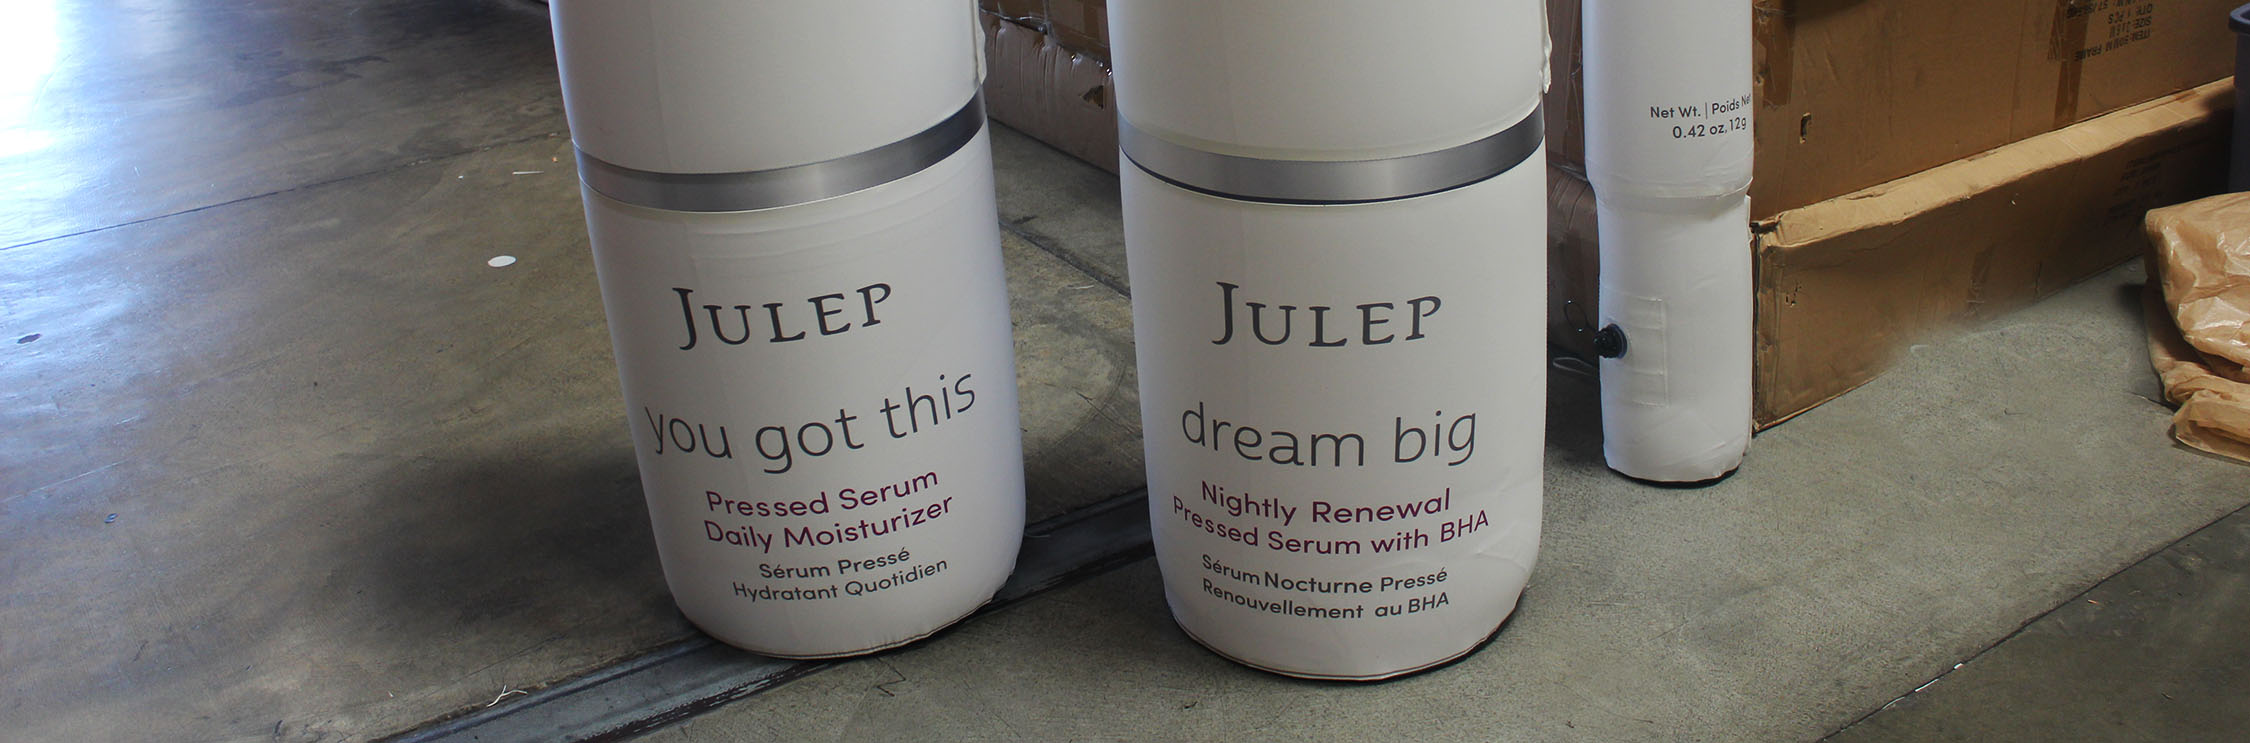 julep-beauty-replicas-inflatables